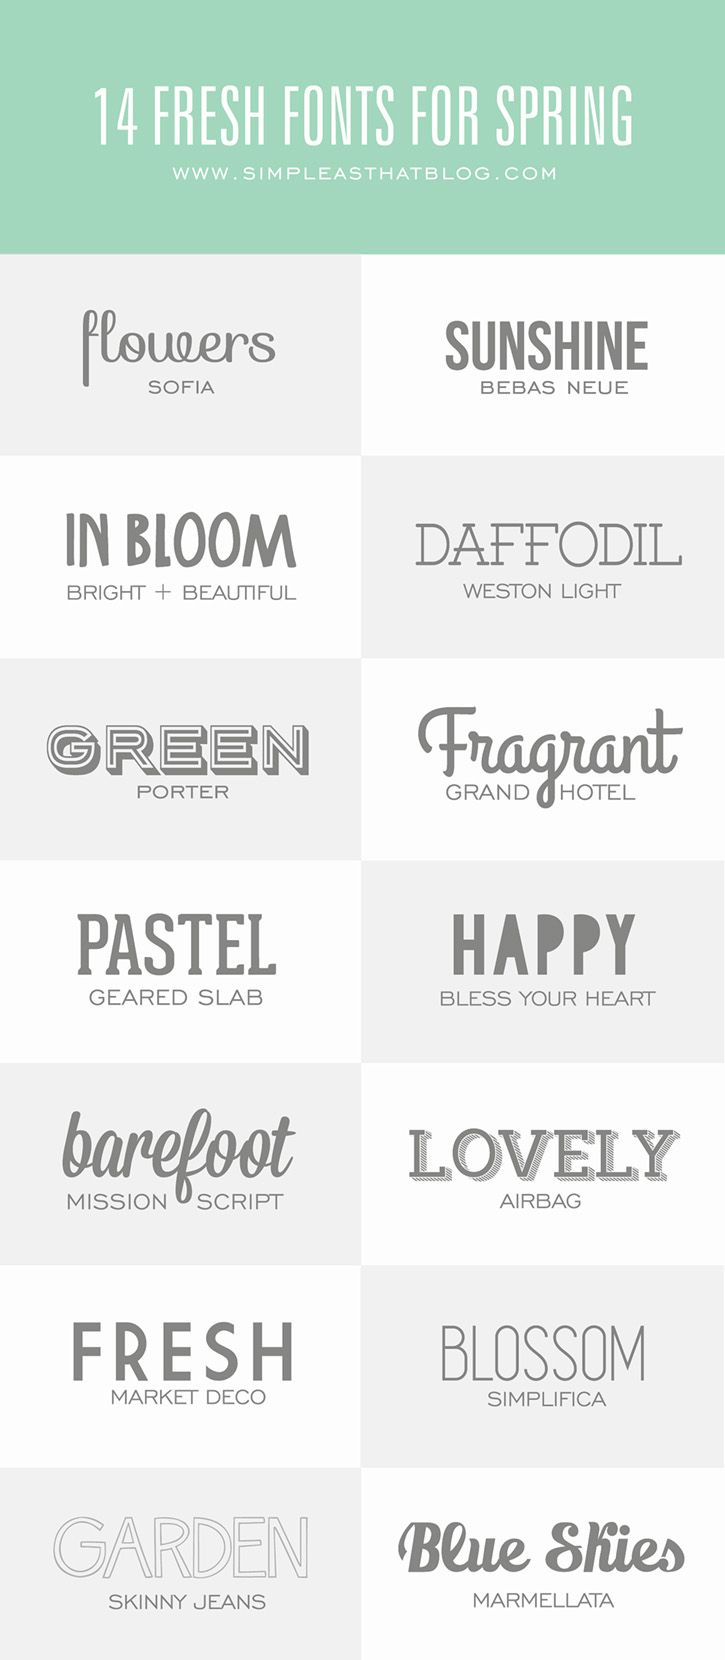 7d377bbe9ca7 14 Fresh Fonts for Spring